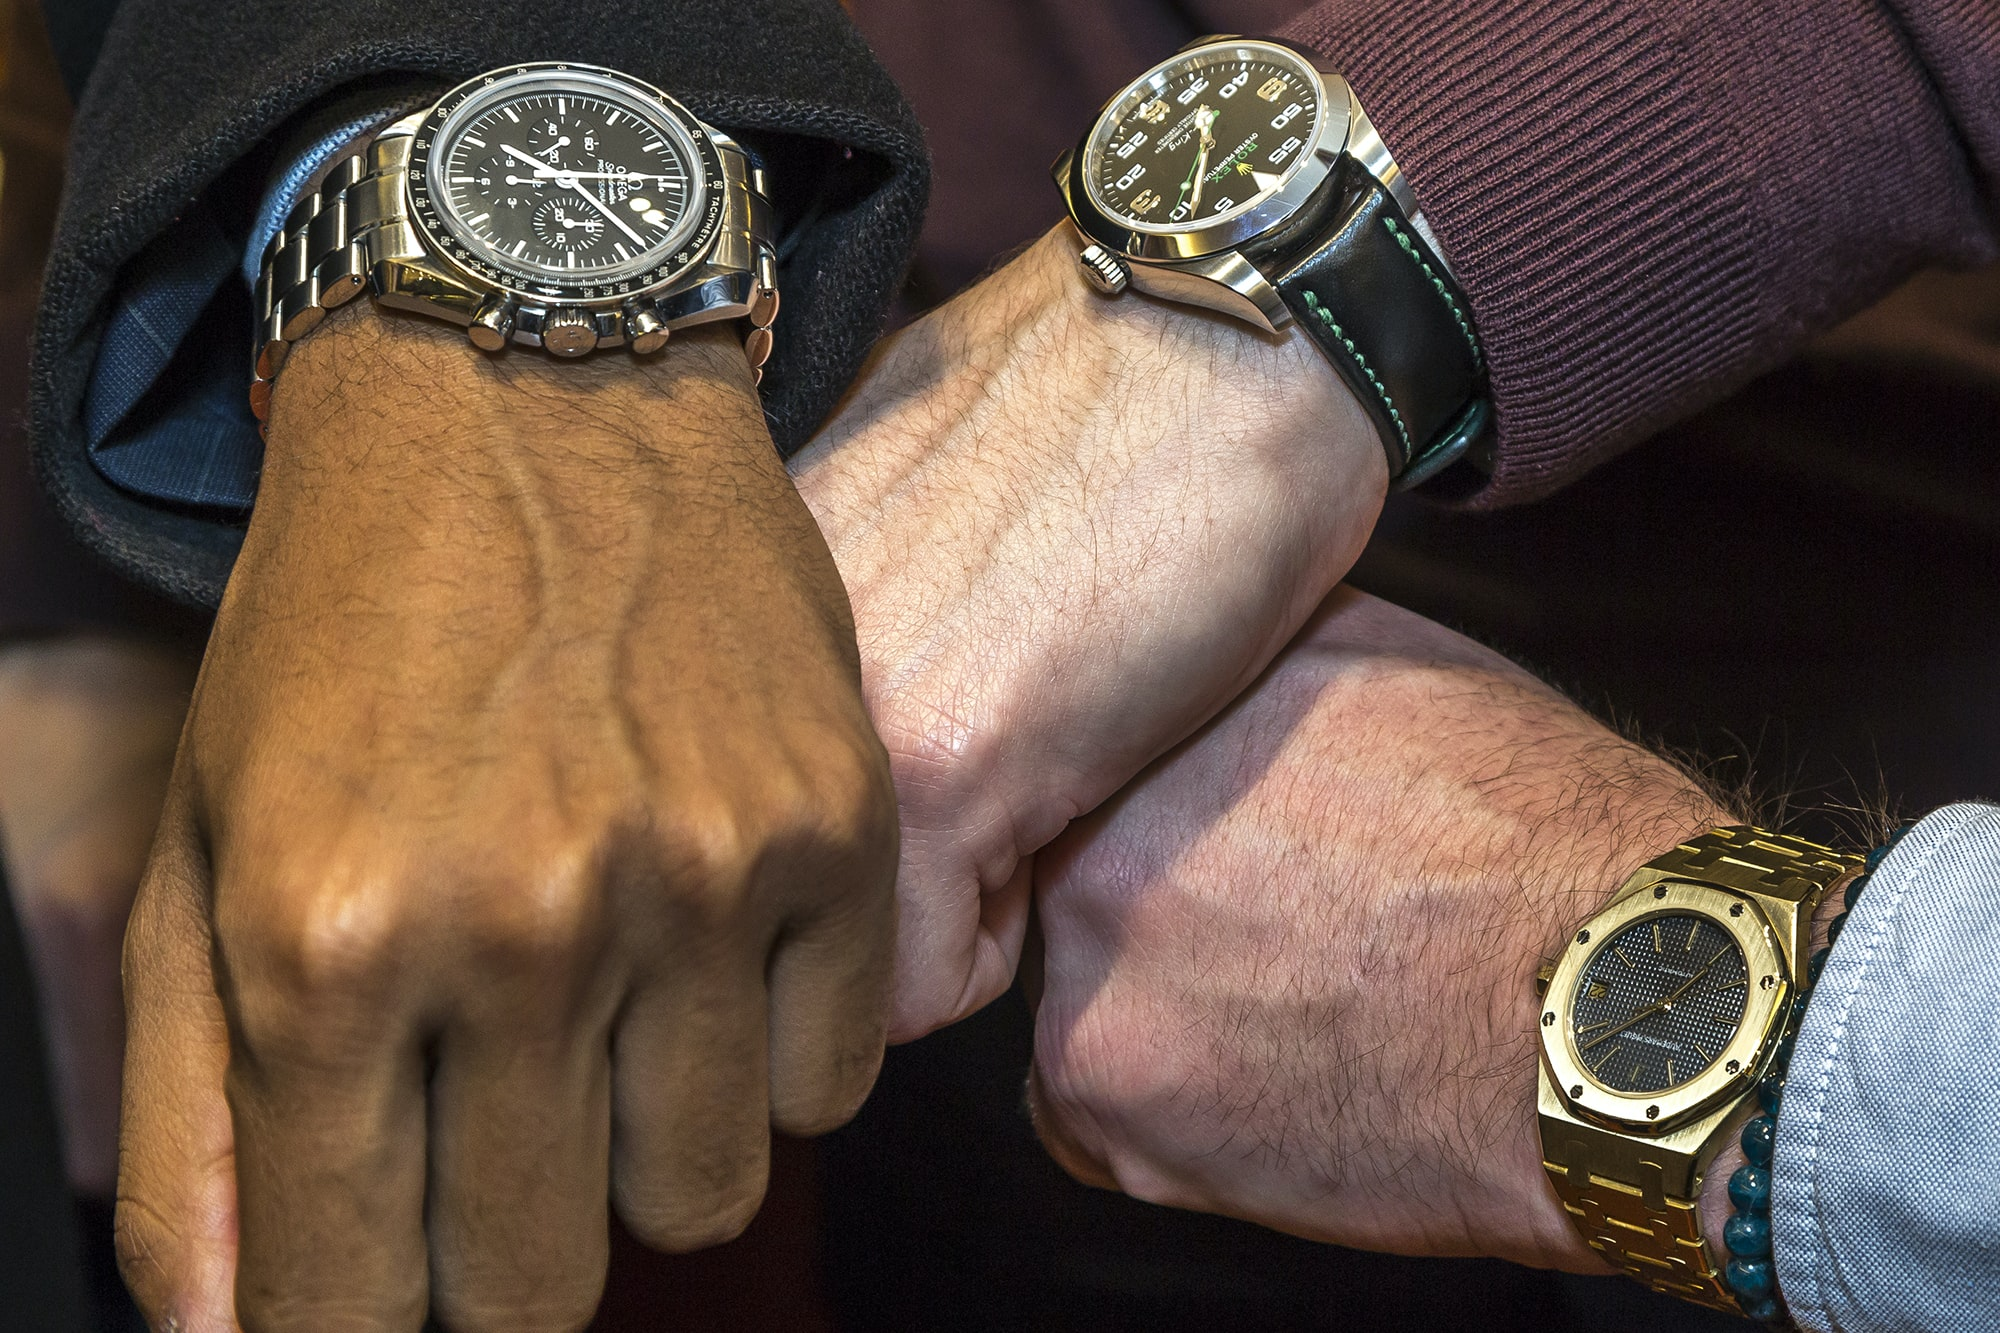 Photo Report: HODINKEE Hosts A Collector Get-Together At The Wempe Boutique In London Photo Report: HODINKEE Hosts A Collector Get-Together At The Wempe Boutique In London 1